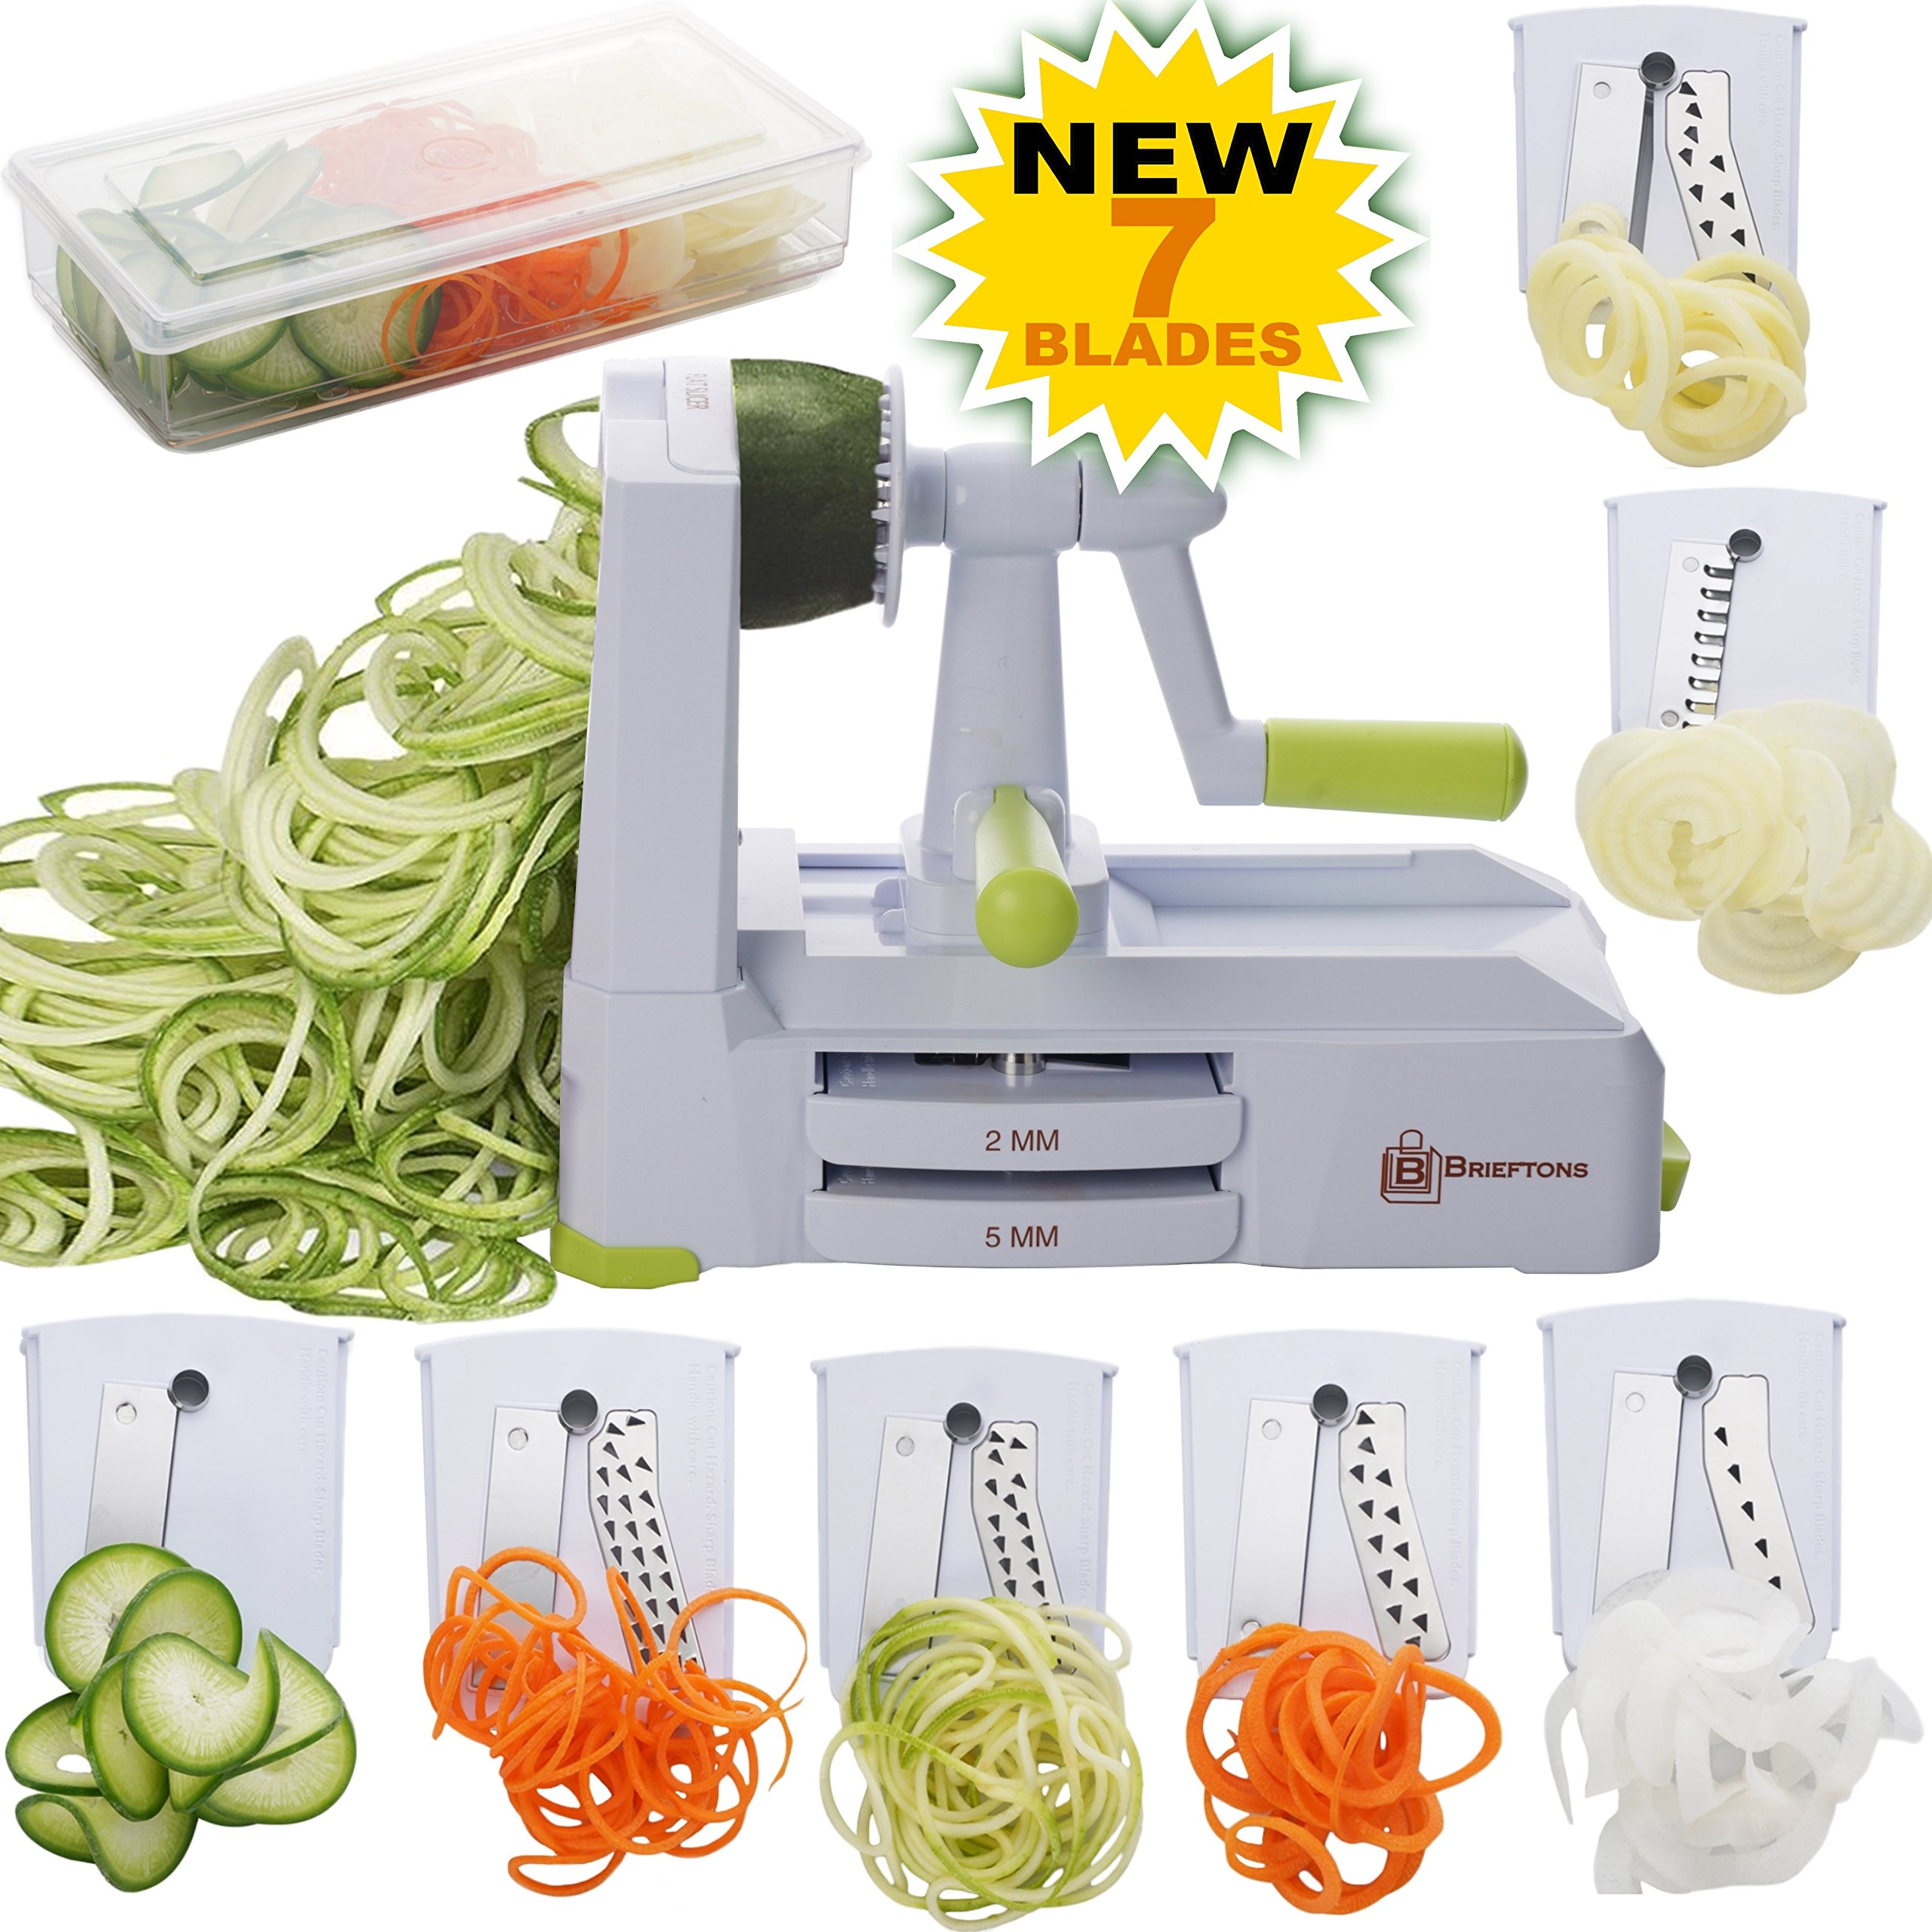 Brieftons 7-Blade Spiralizer: Strongest-and-Heaviest Duty Vegetable Spiral Slicer, Best Veggie Pasta Spaghetti Maker for Low Carb/Paleo/Gluten-Free, With Container, Lid, Blade Caddy & 4 Recipe Ebooks by Brieftons